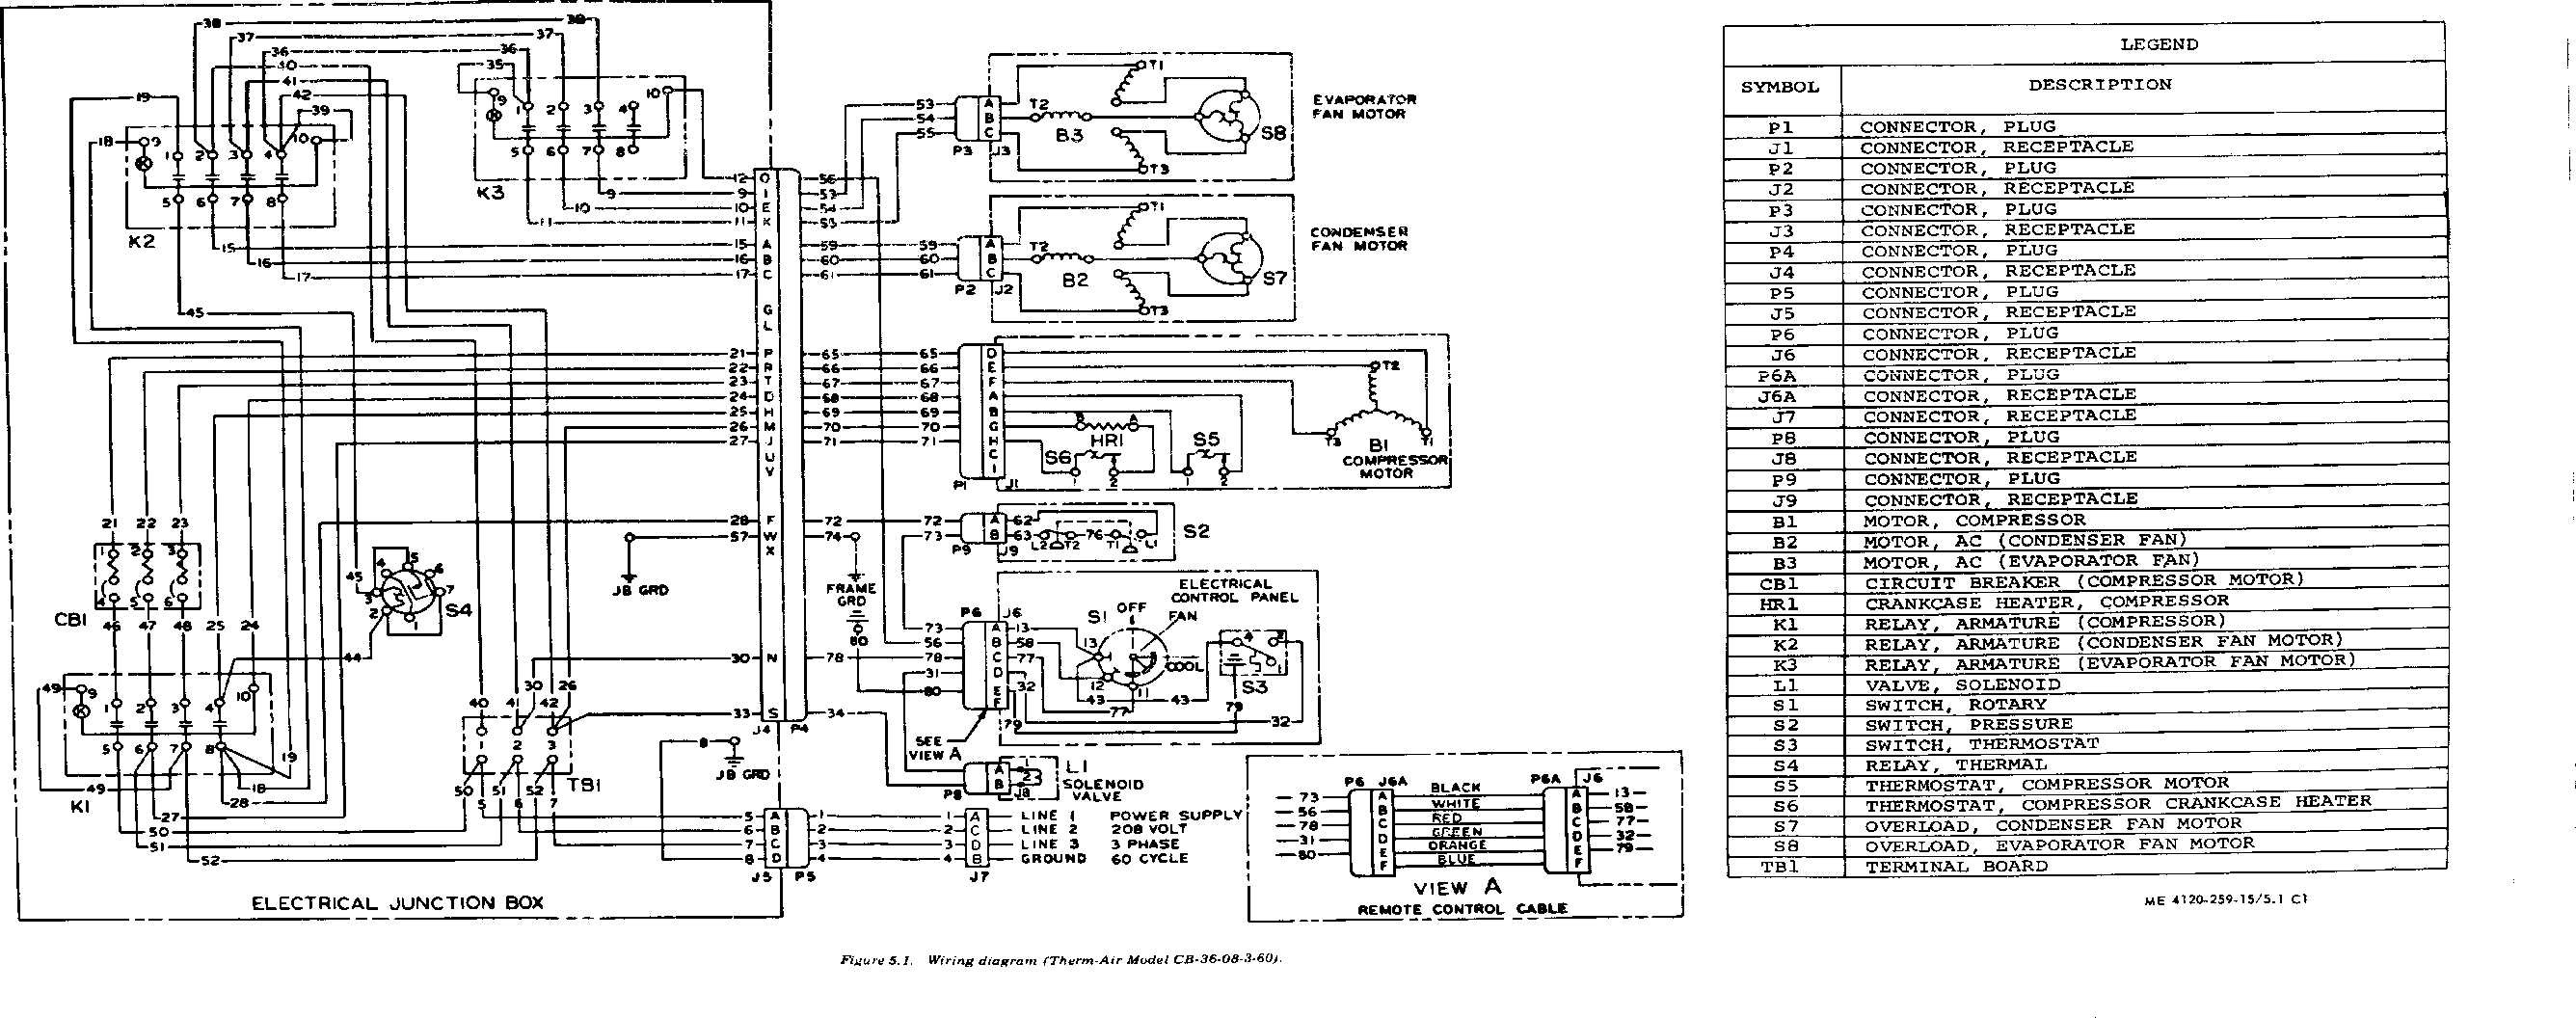 Trane Heat Pumps Wiring Diagram from wholefoodsonabudget.com